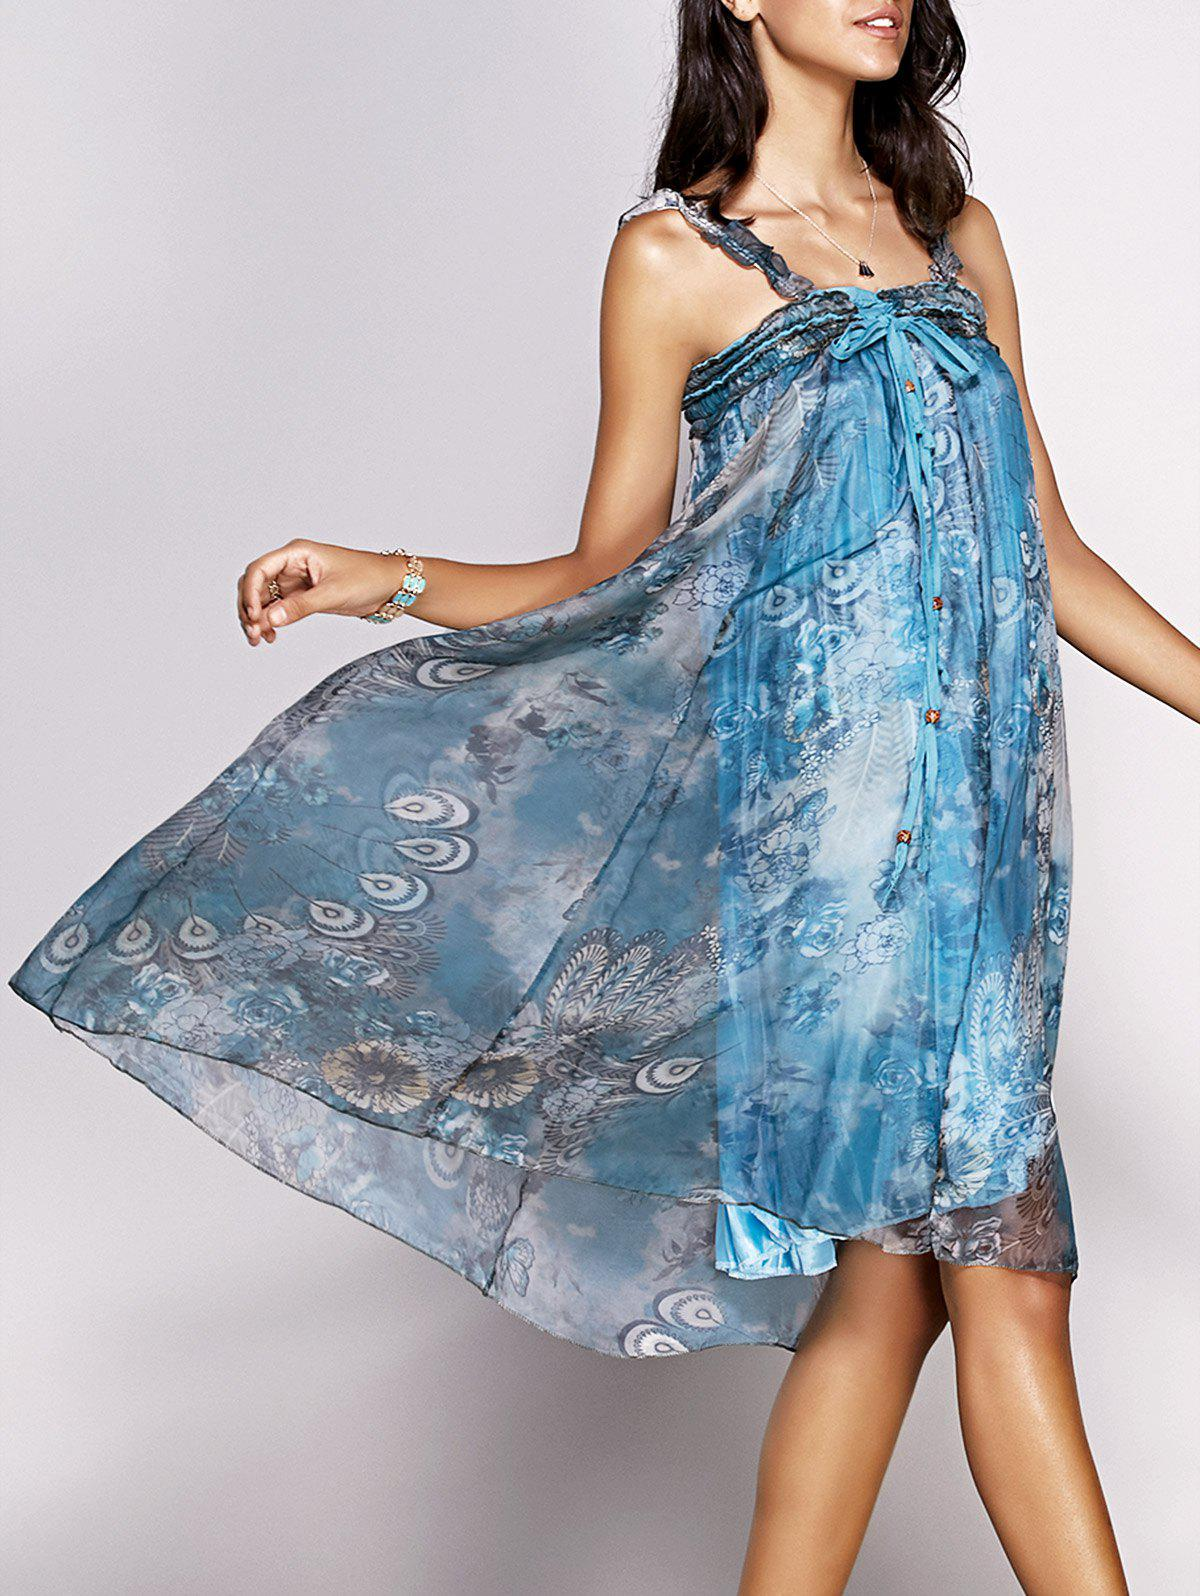 Trendy Feathers Print Tie Front Dress For Women - COLORMIX ONE SIZE(FIT SIZE XS TO M)